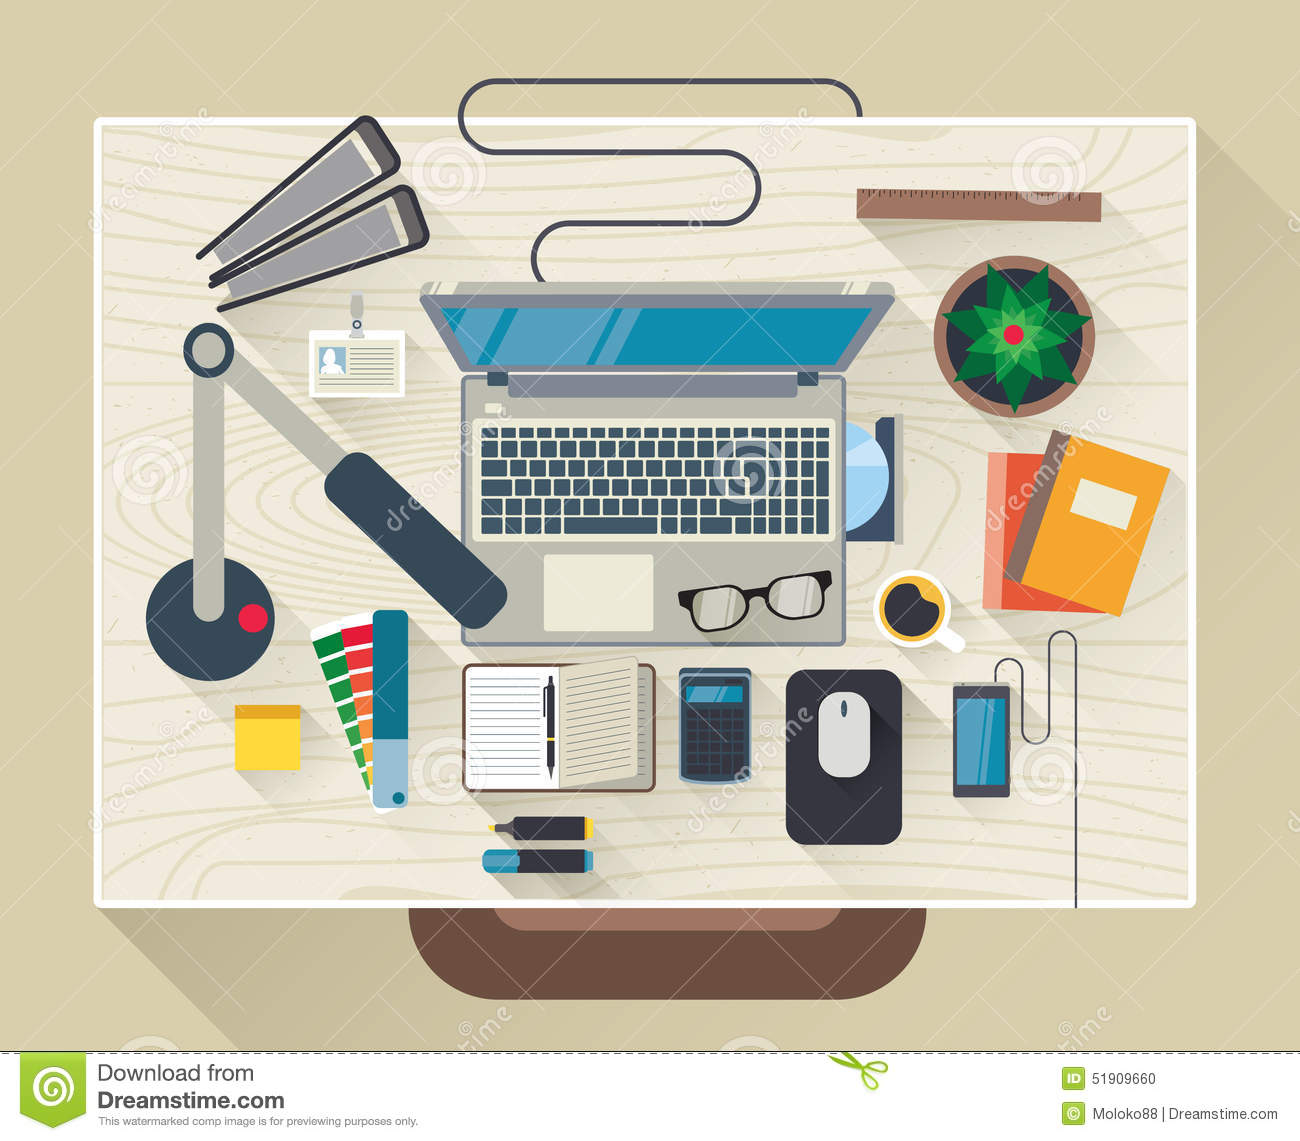 laptops are a valuable resource for